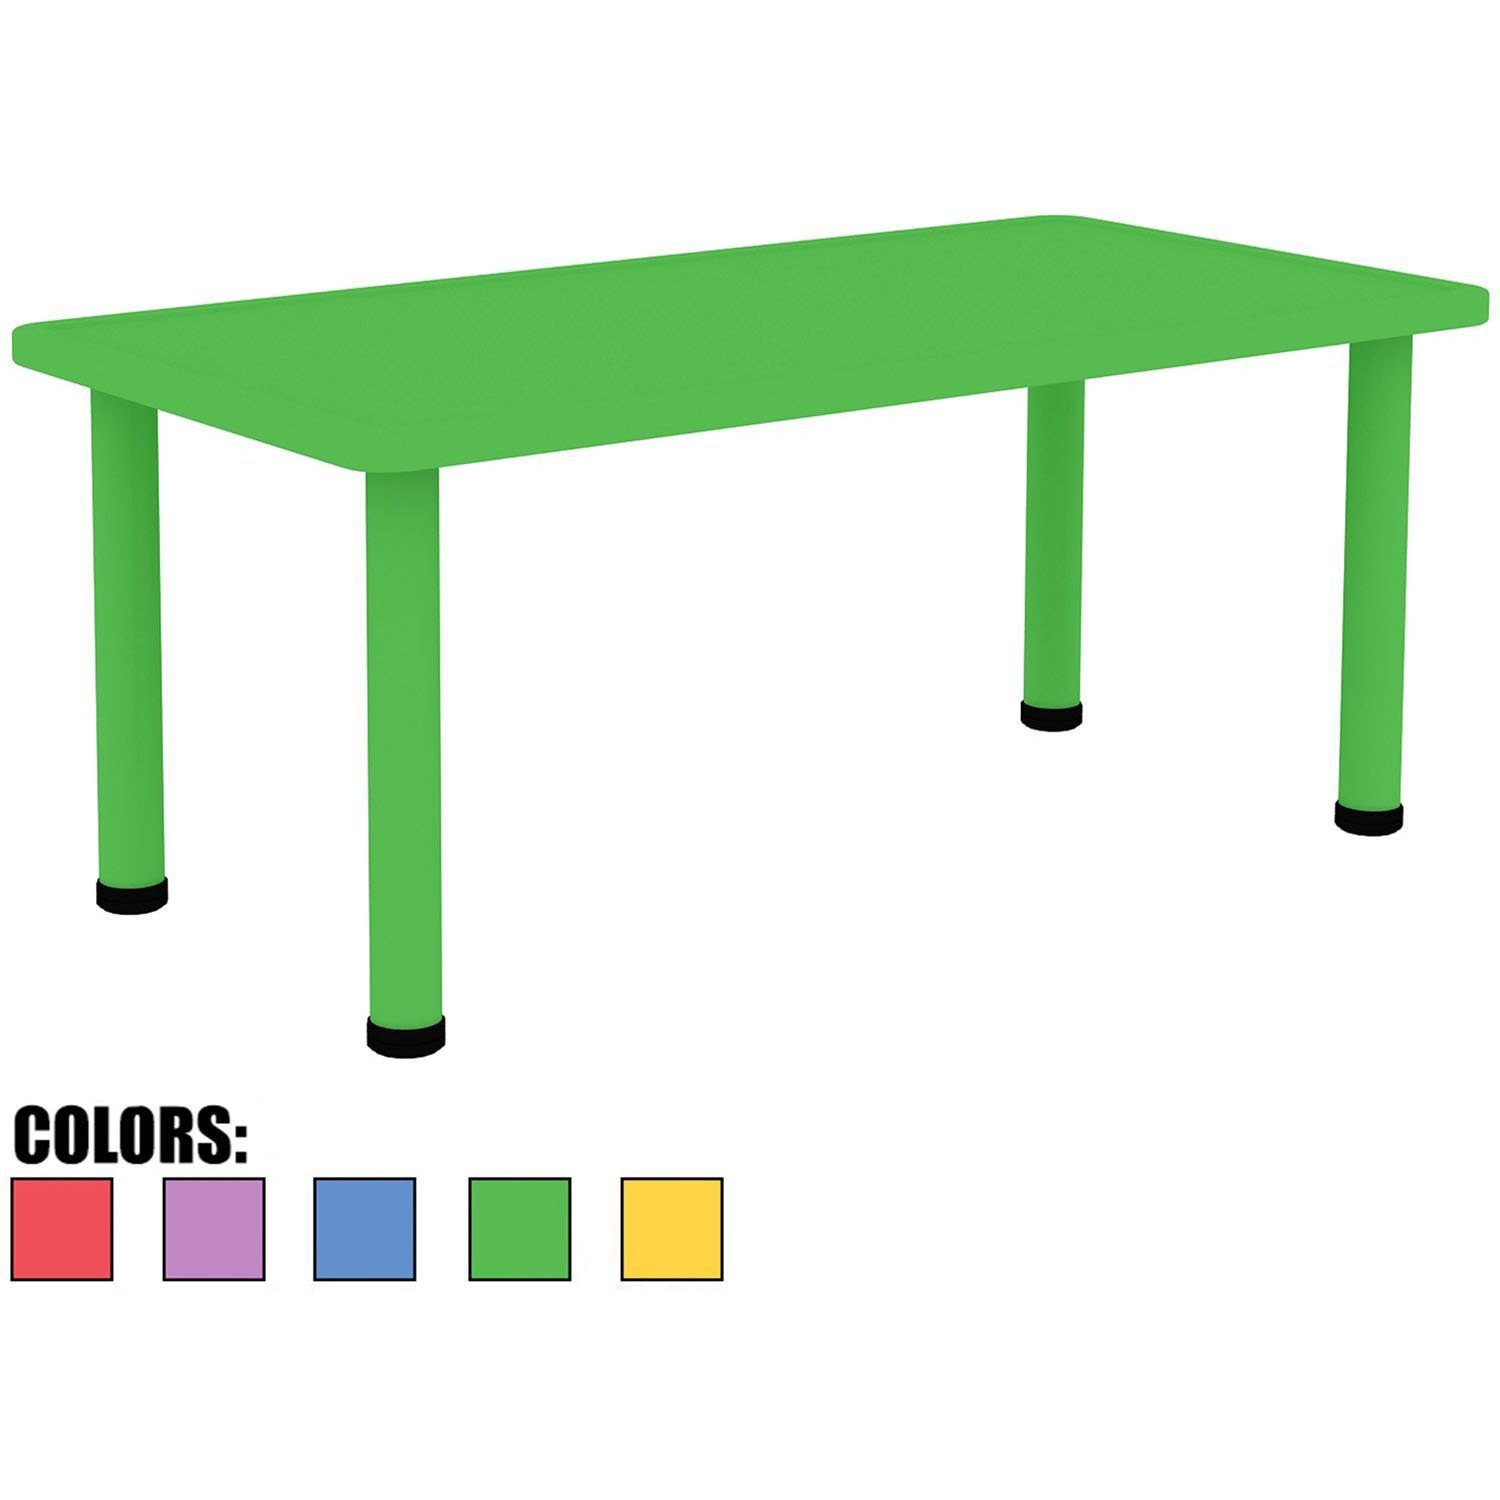 2xhome - Green - Kids Table - Height Adjustable 18.25'' - 19.25'' Rectangle Shape Child Plastic Activity Table Bright Colorful Learn Play School Home Fun Children Furniture Round Safety Corner 24''x48 by 2xhome